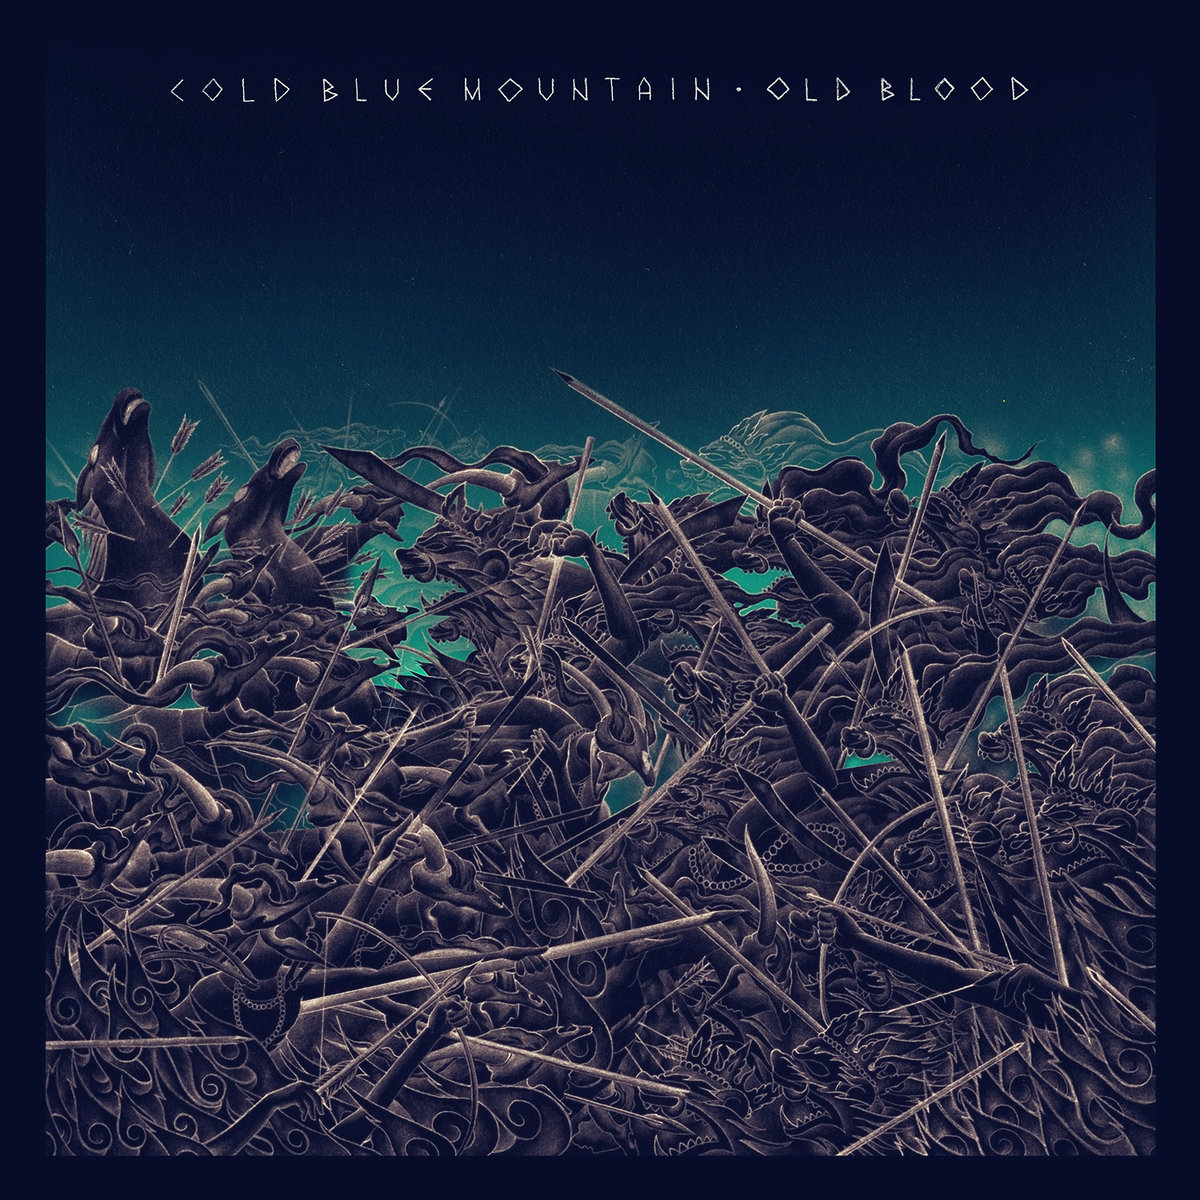 Cold Blue Mountain - Demise @ 'Old Blood' album (metal, crust)